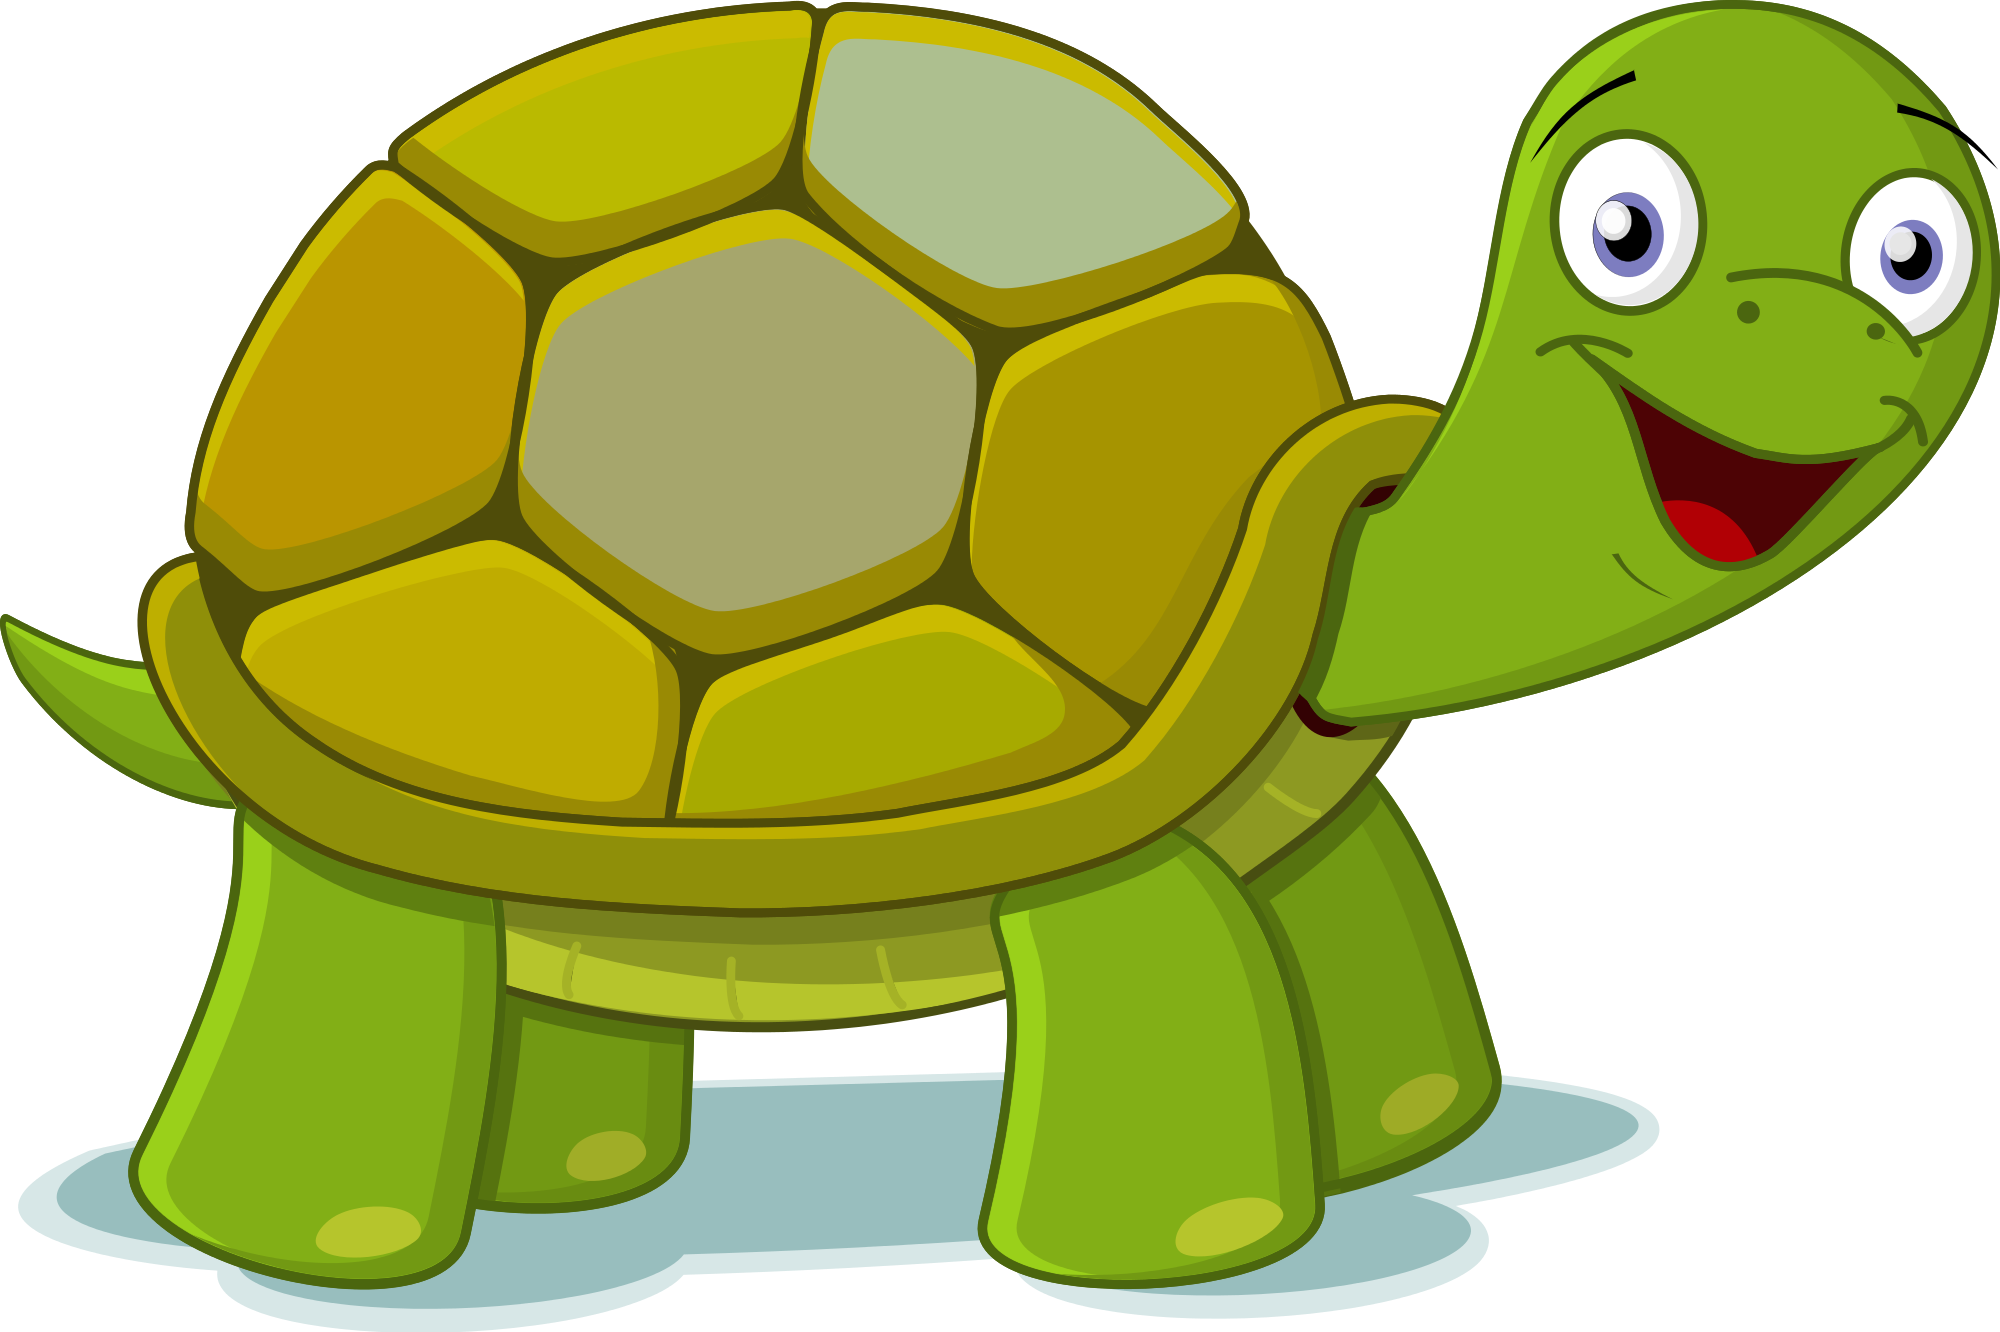 Ninja Turtles clipart yellow Clipart Images turtle%20clipart%20 Free Clipart